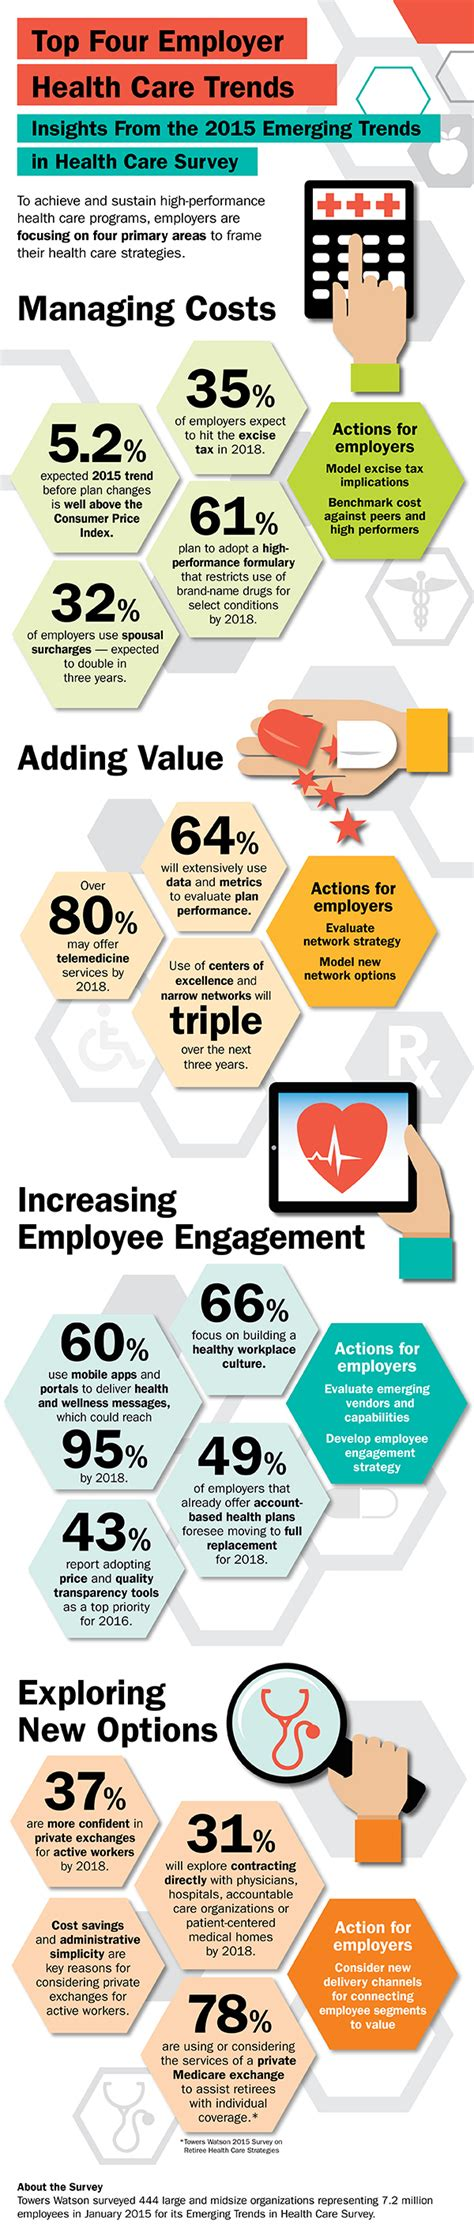 Top 4 Benefits Of Vacationing Infographic Top Four Employer Health Care Trends Towers Watson